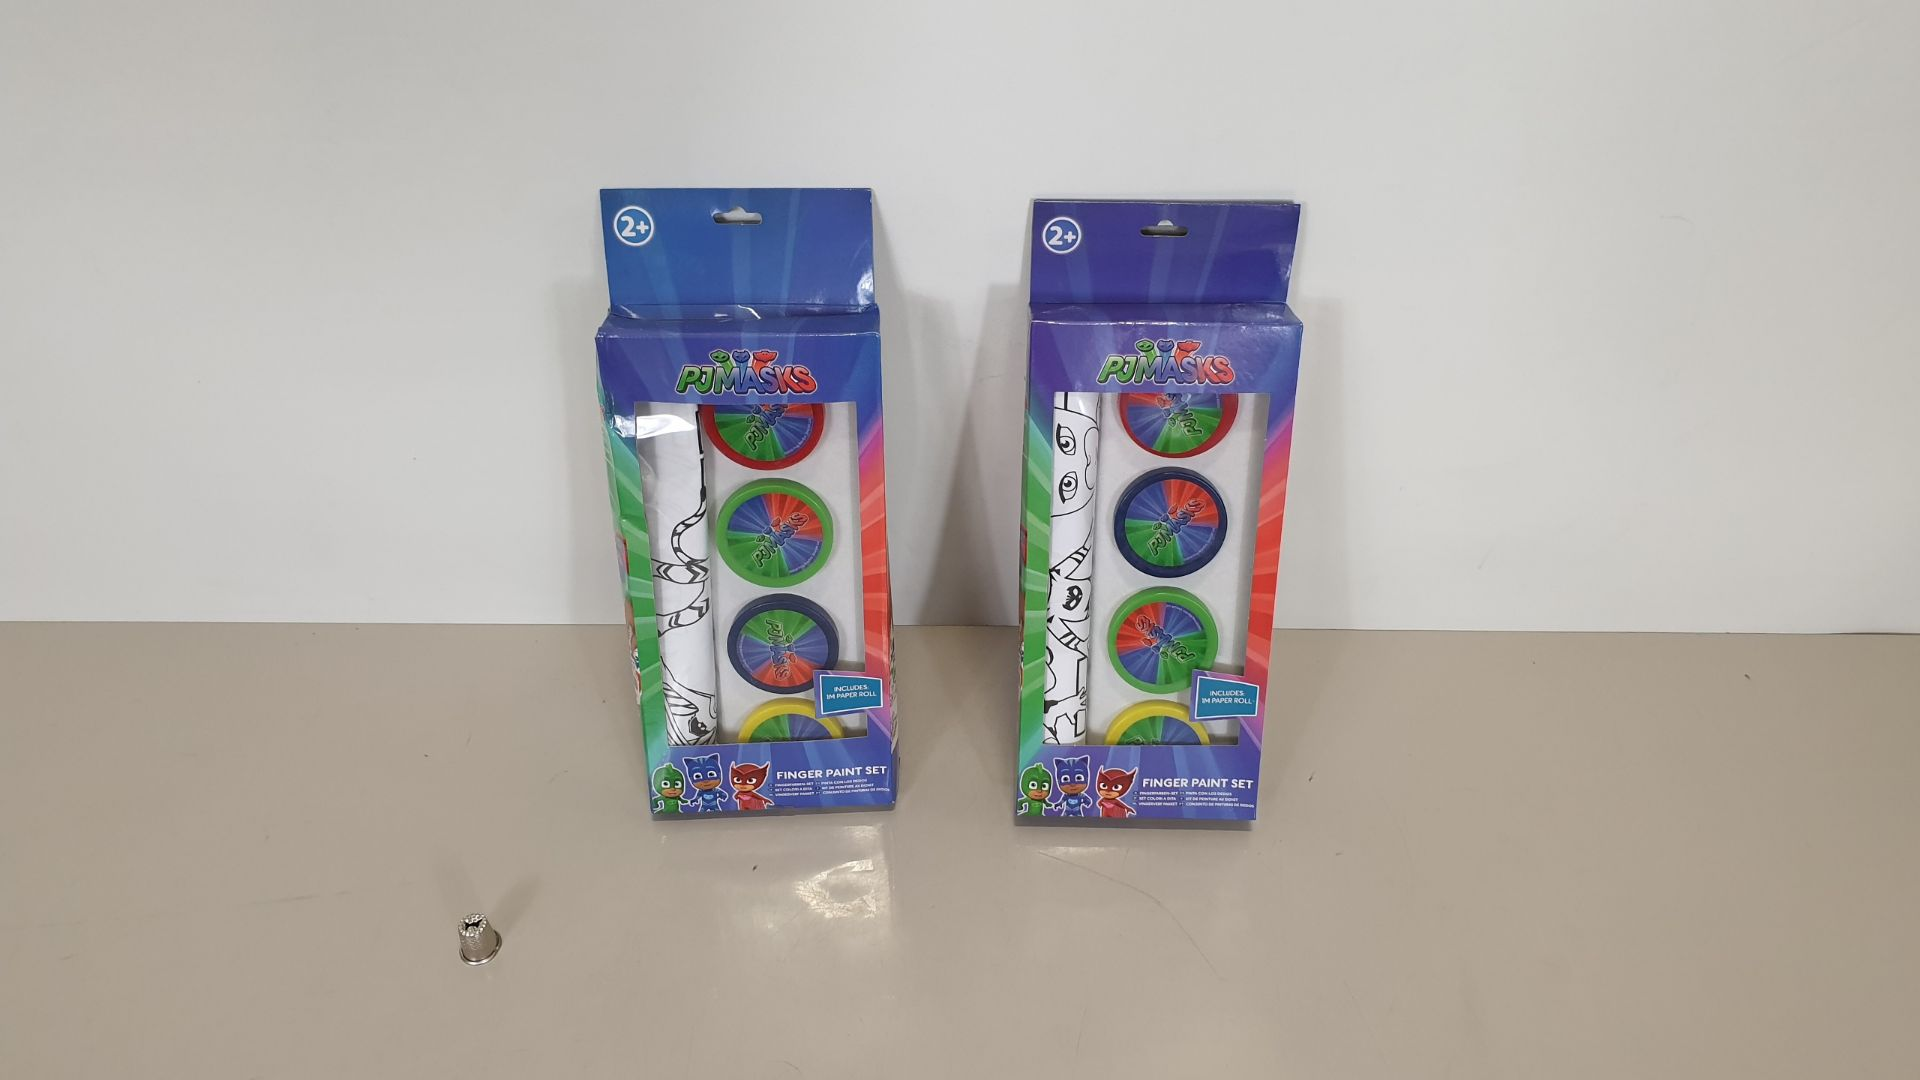 Lot 59 - 156 X BRAND NEW PJ MASKS 4 FINGER PAINT SET, INCLUDES 1M PAPER ROLL - IN 13 CARTONS